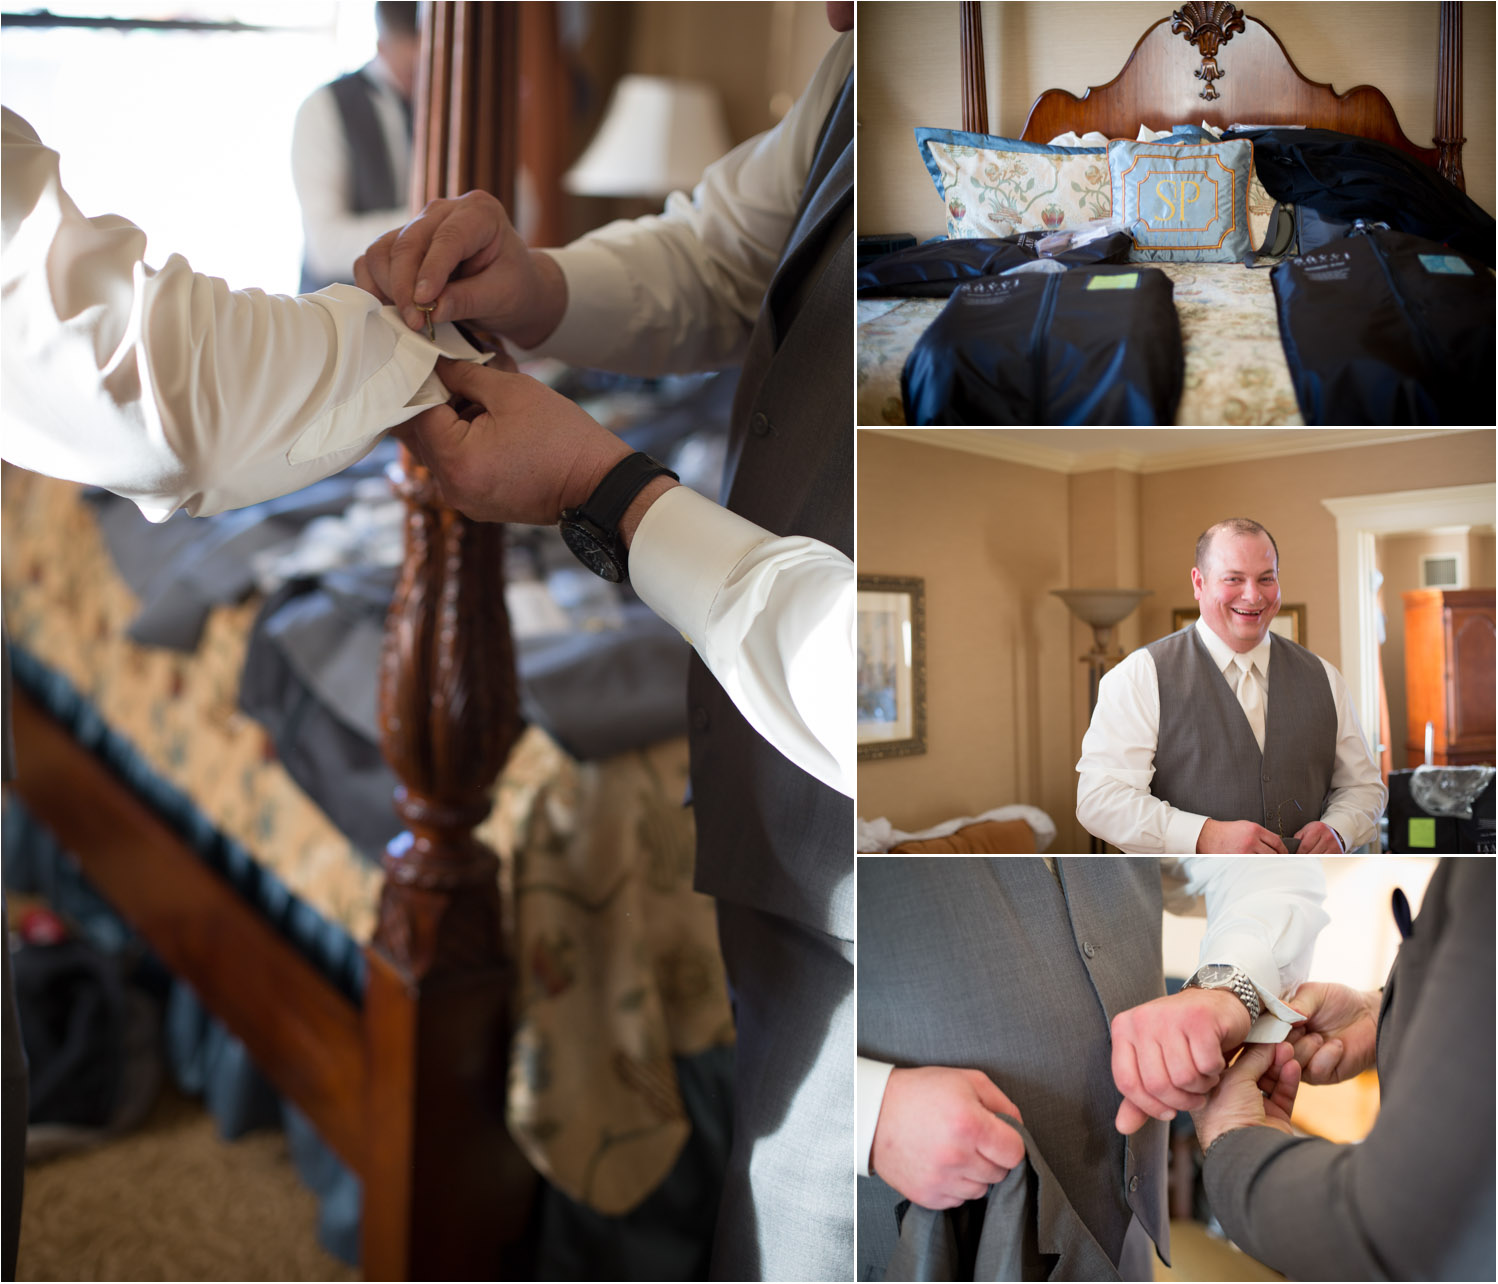 01-the-st-paul-hotel-new-years-eve-wedding-groom-getting-ready-details-cuff-links-mahonen-photography.jpg